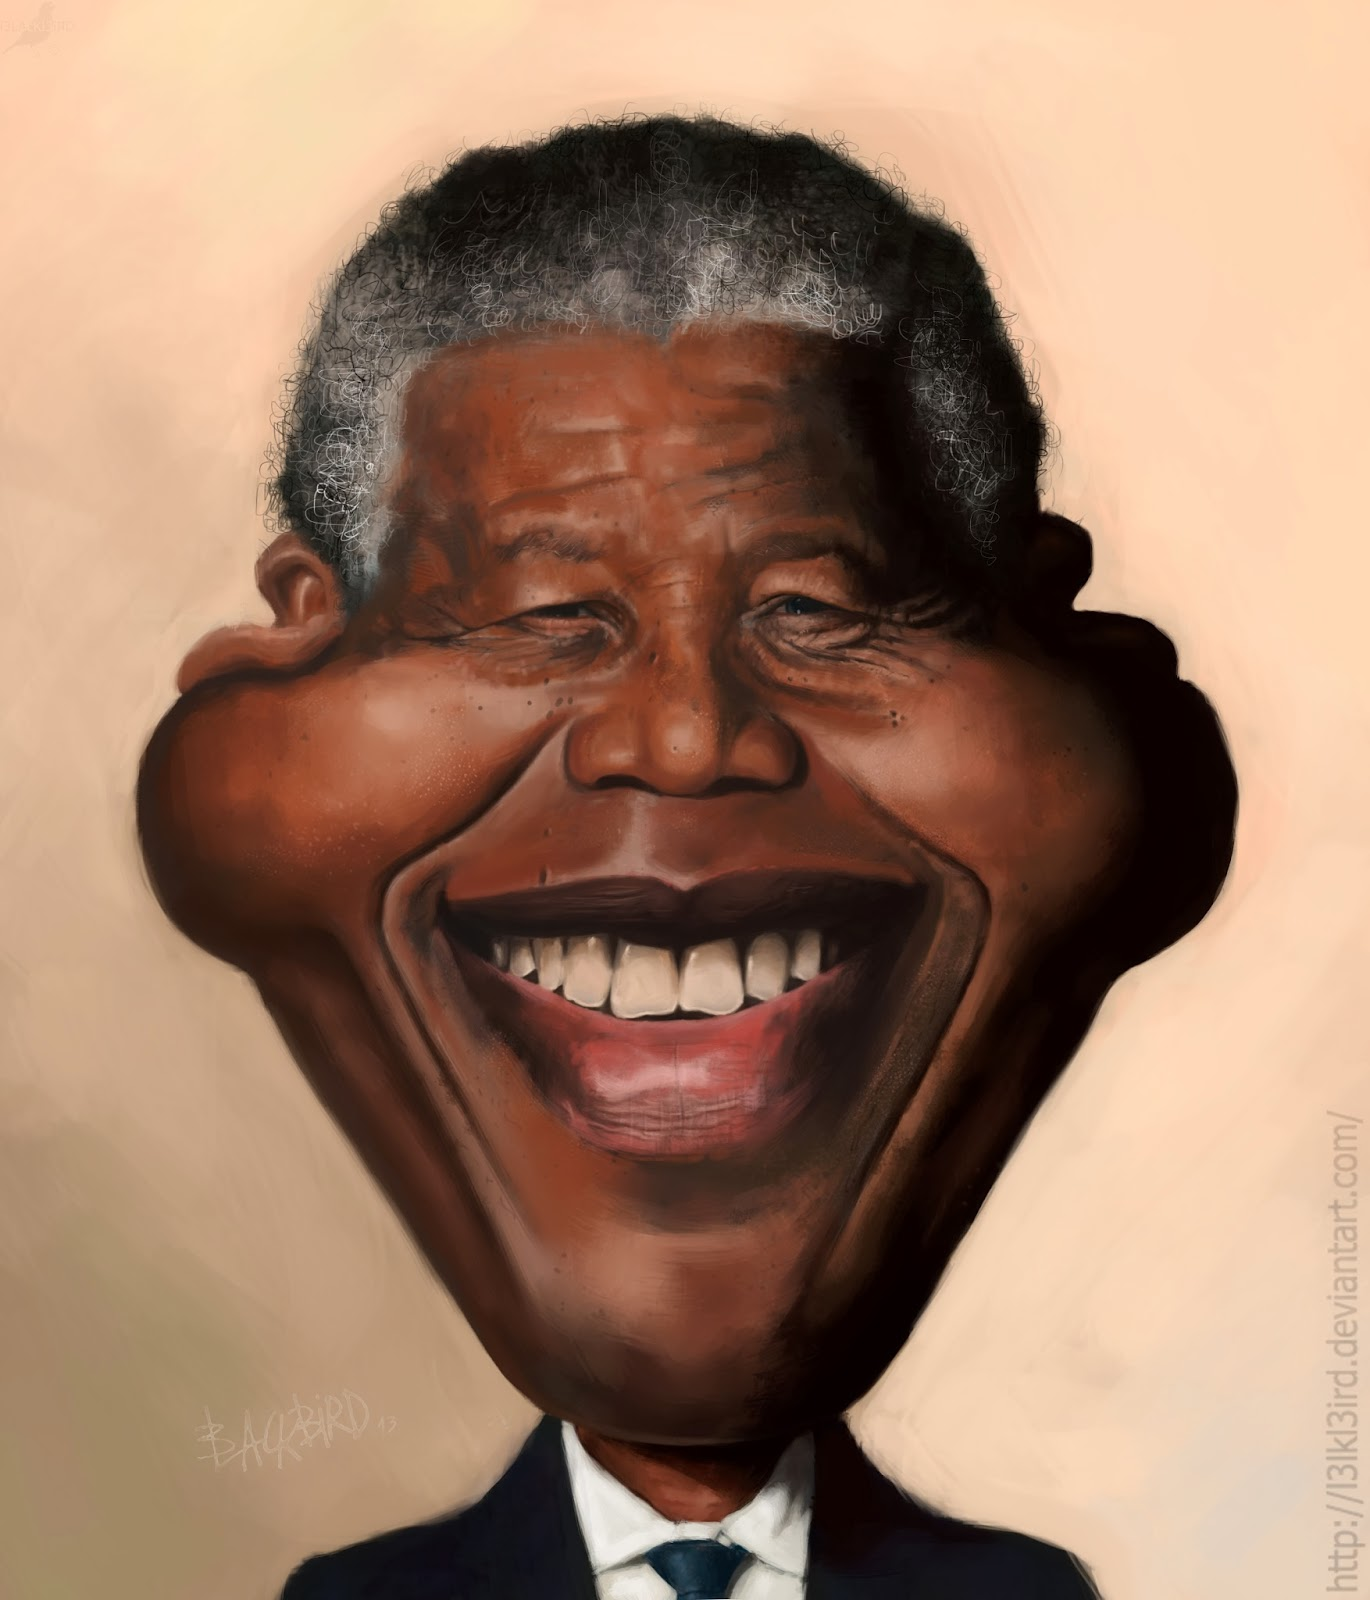 a biography of nelson rolihlahla mandela After climbing a mountain very high, we discovered that there are many other mountains to climb nelson mandela.